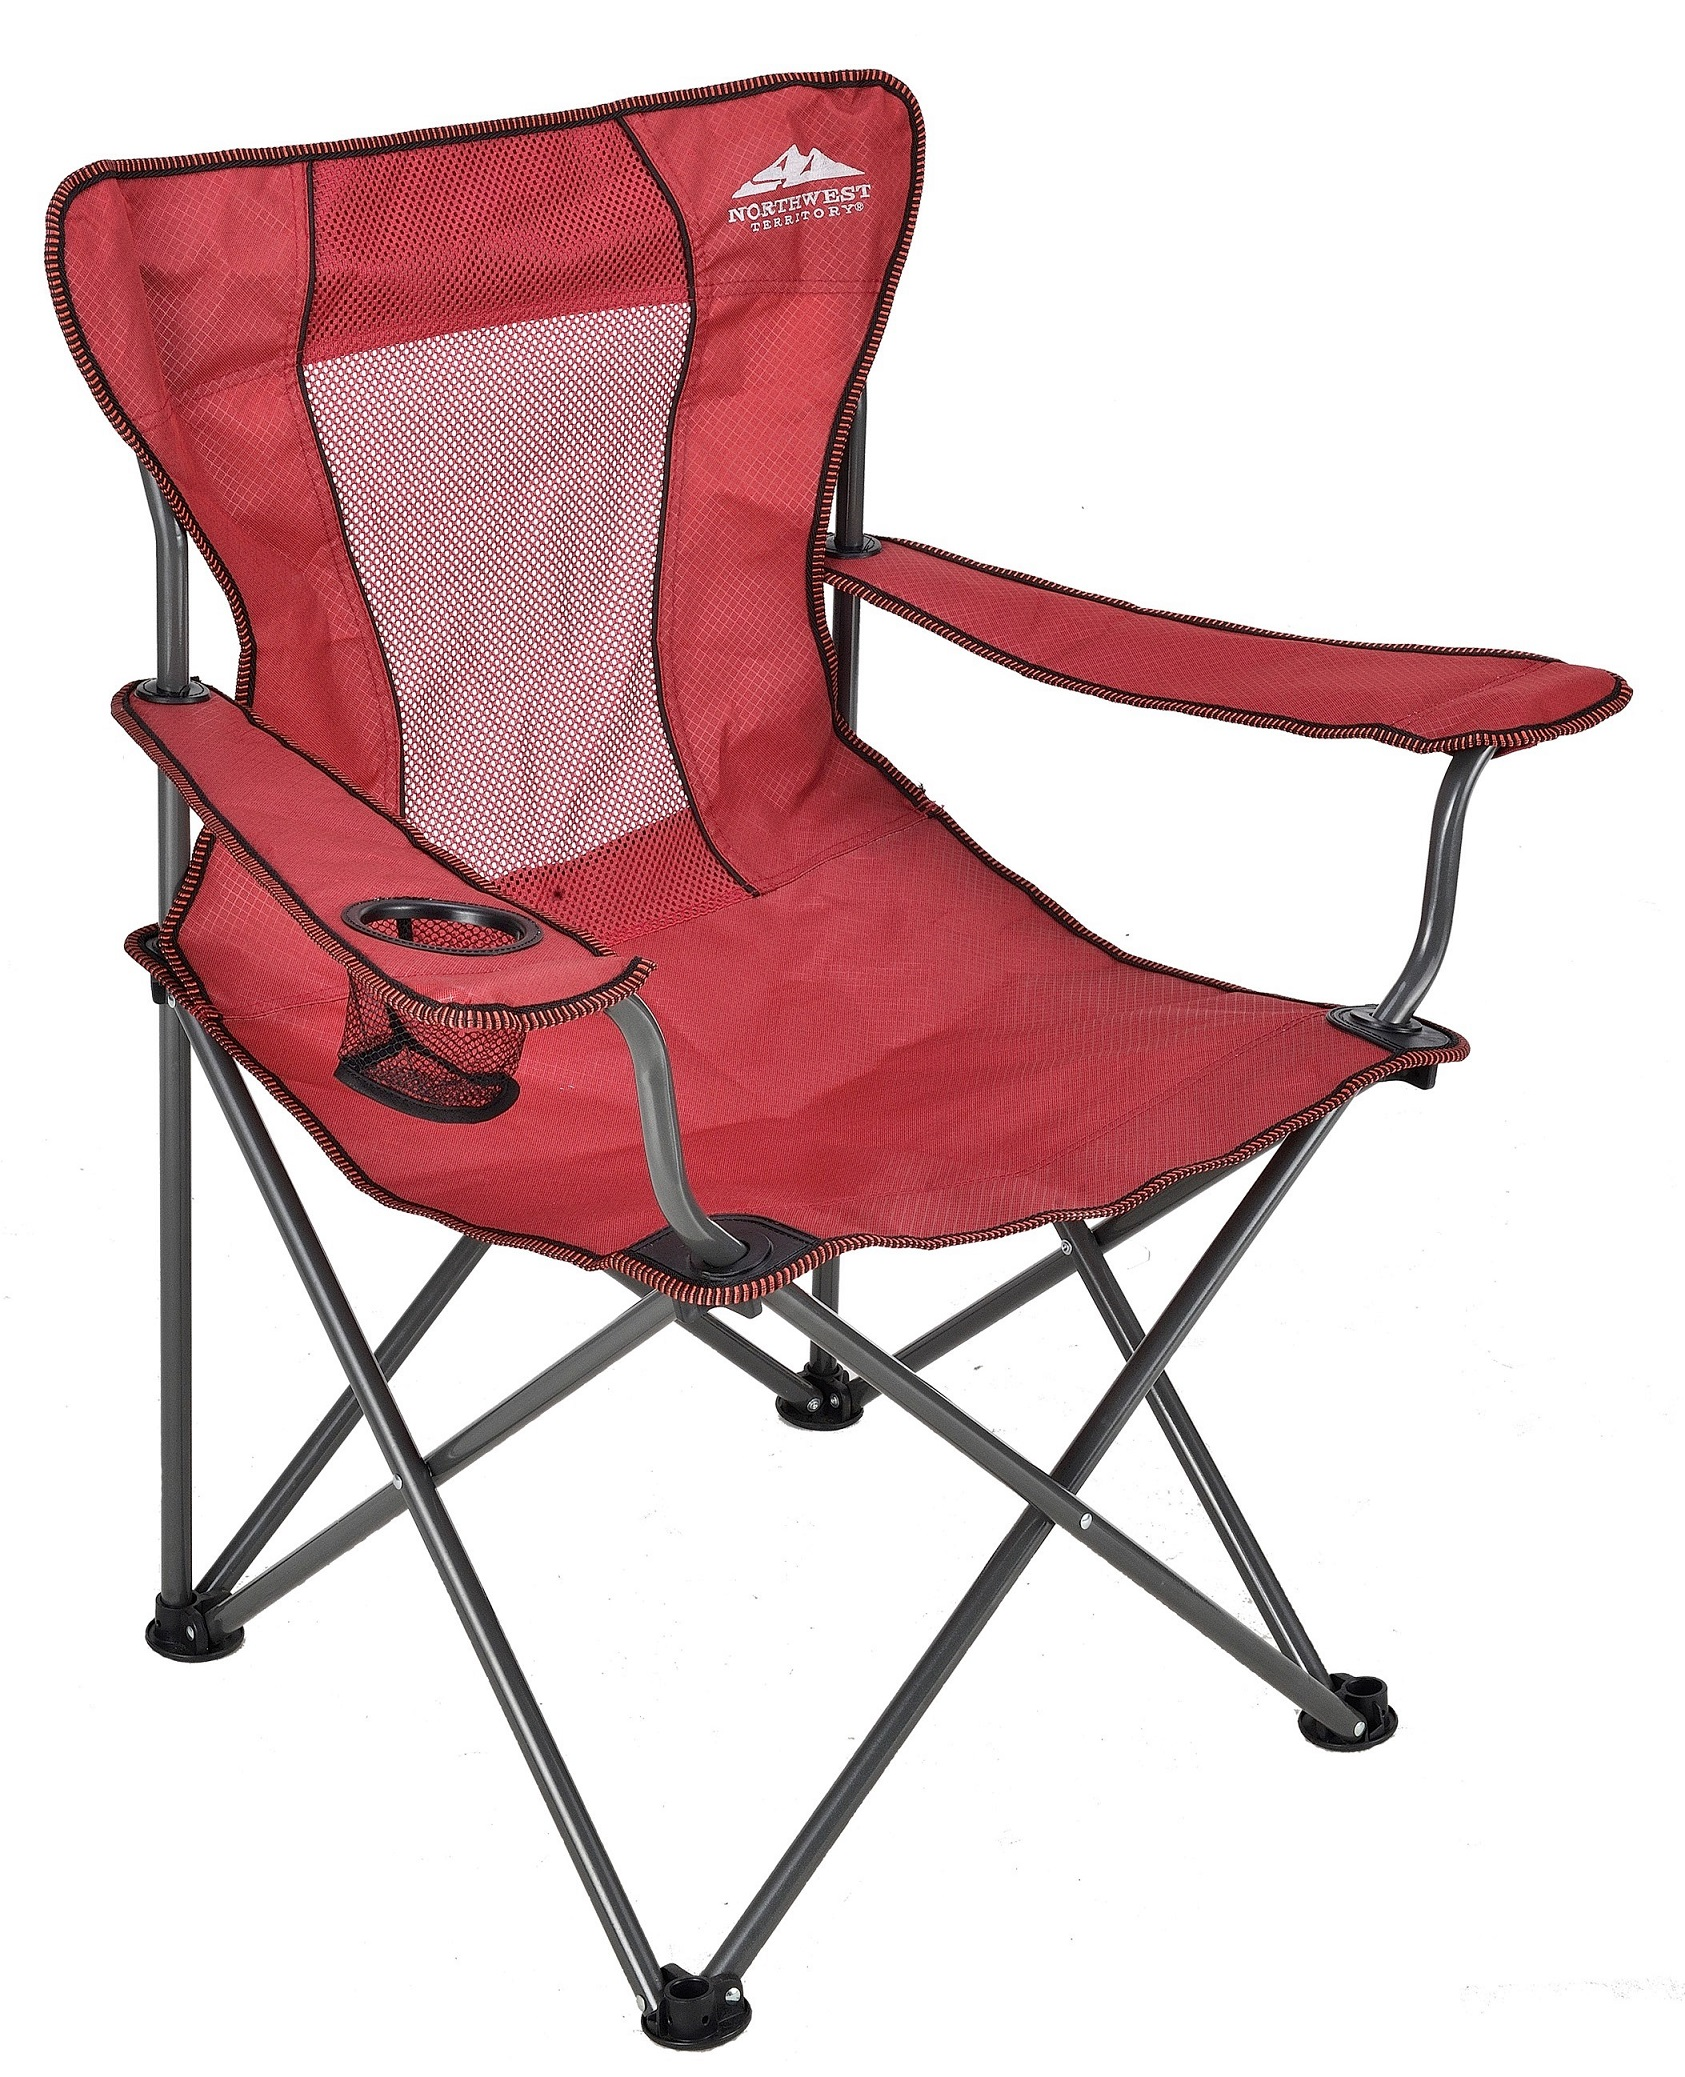 Captains Chair Exercise Deluxe Mesh Captain 39s Quad Chair Wine Red Shop Your